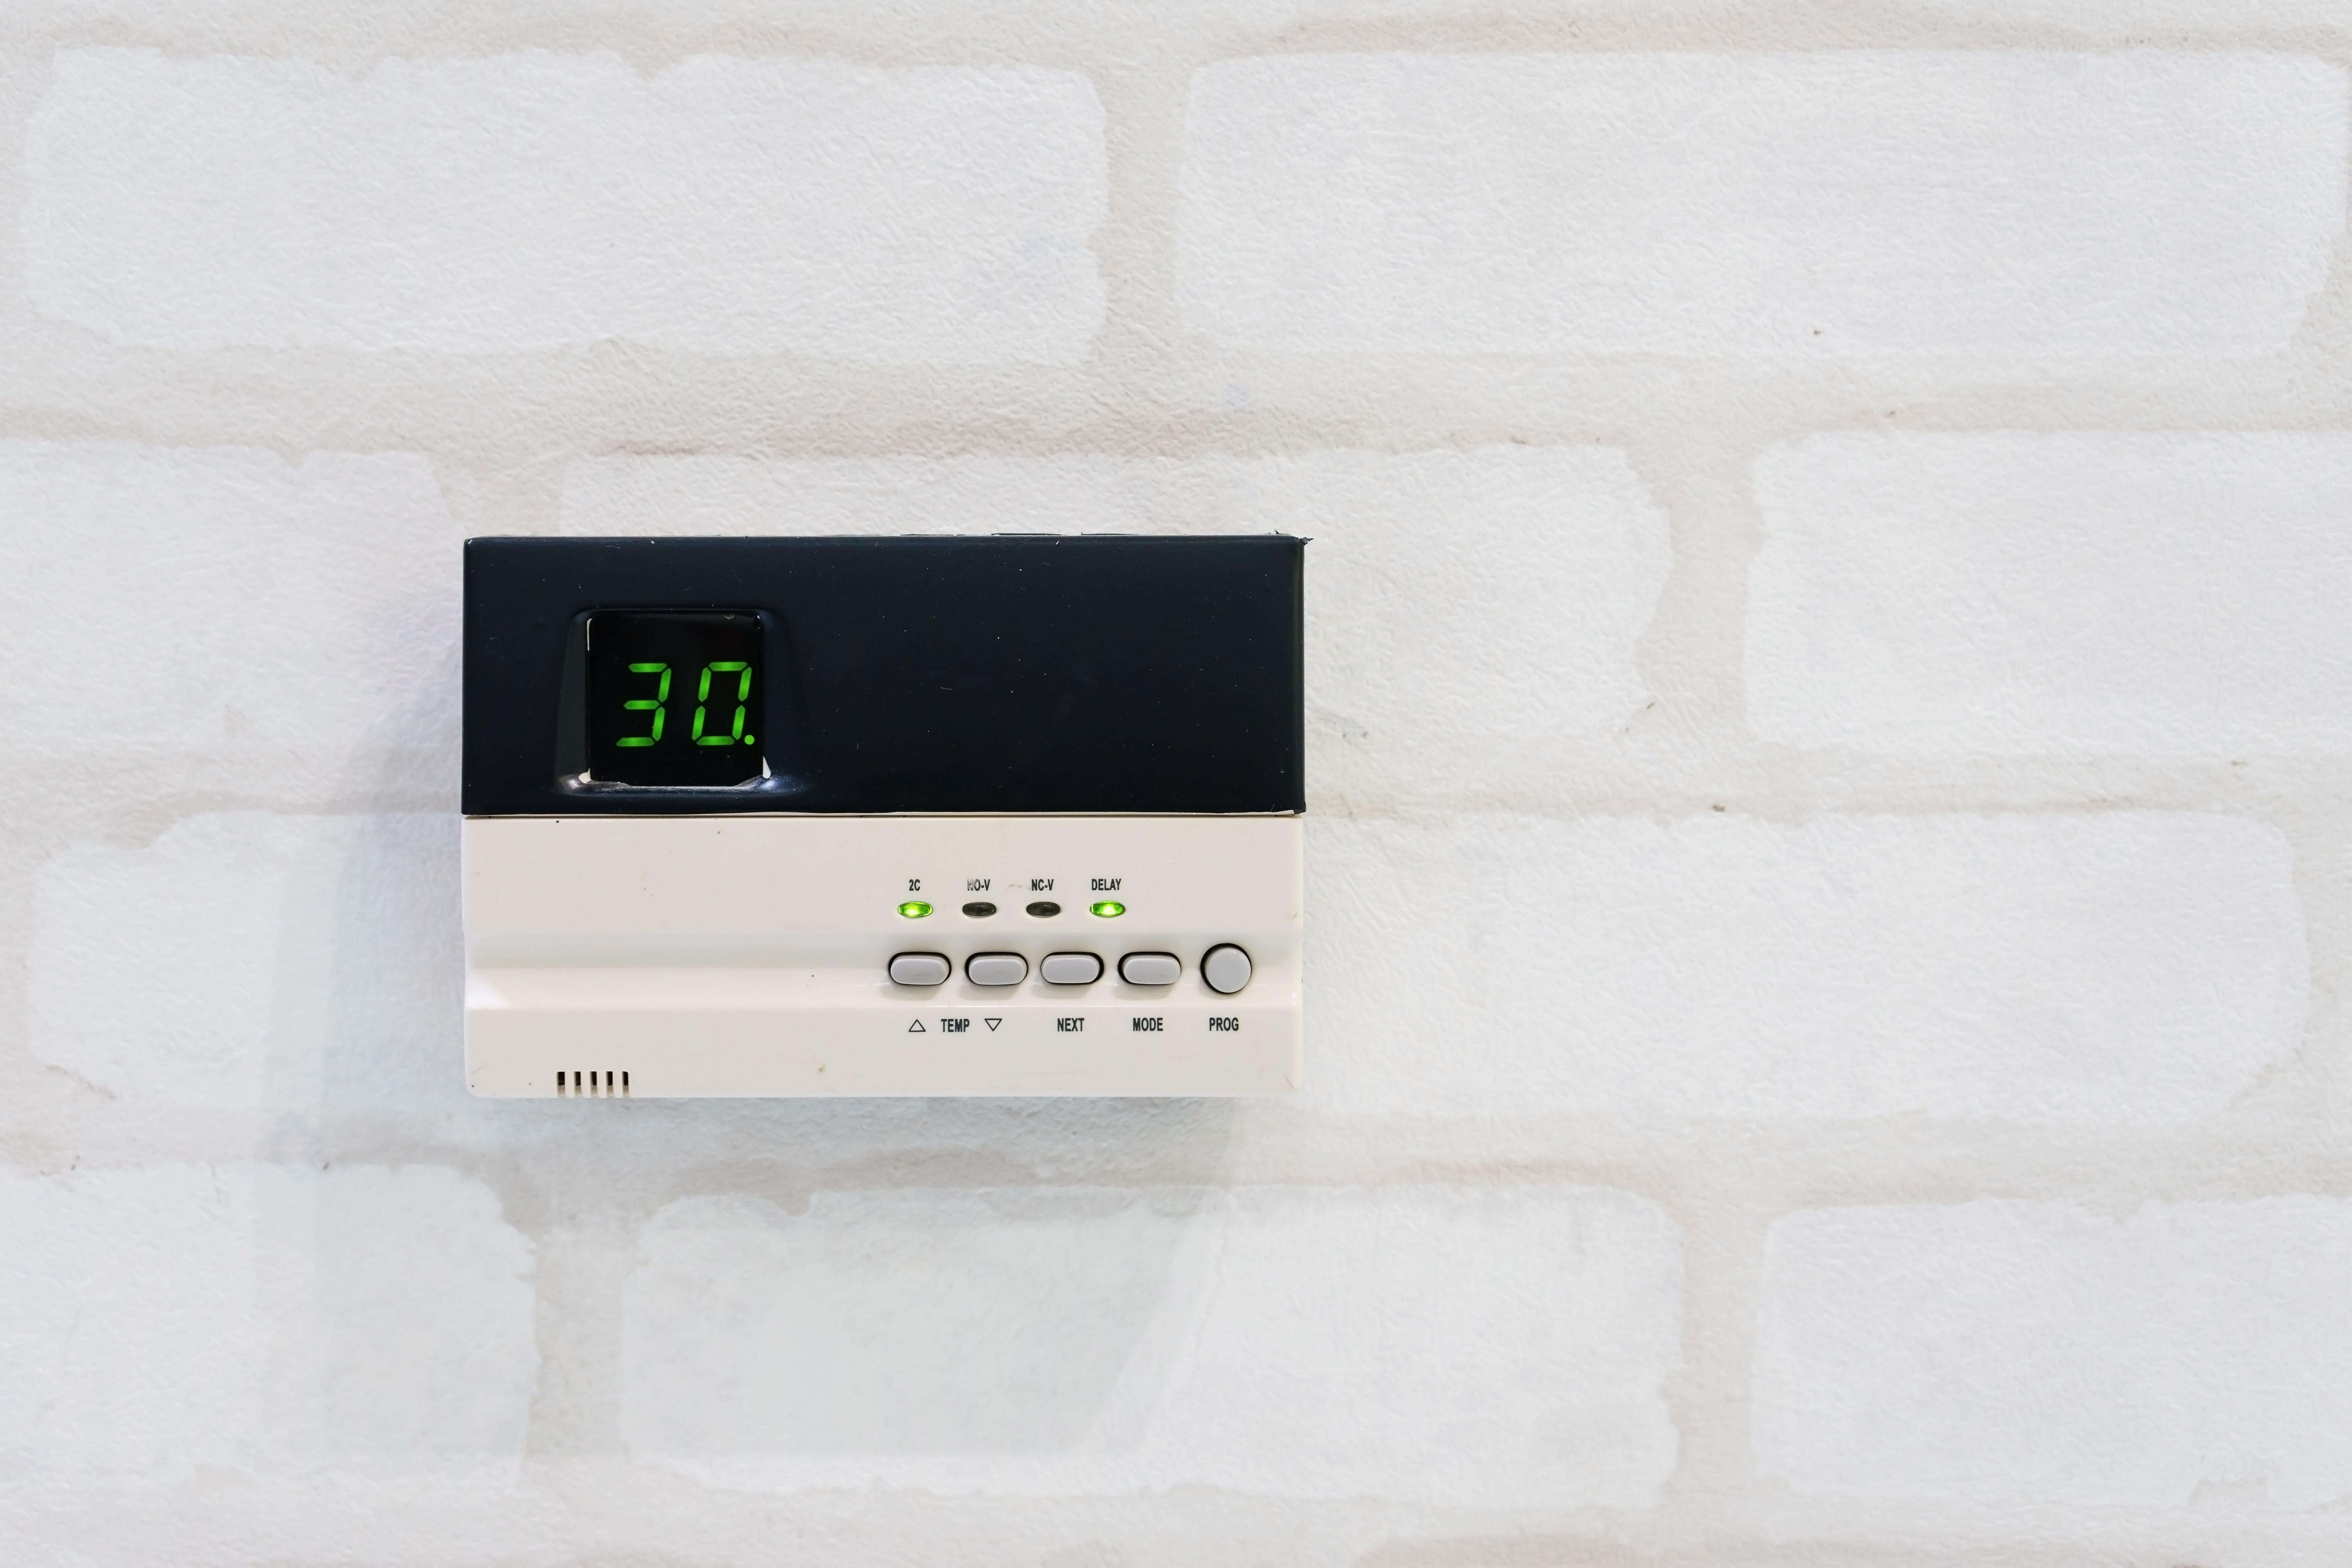 Why Financial Institutions Should Invest In Central Heating Rather Than Plug In Heaters